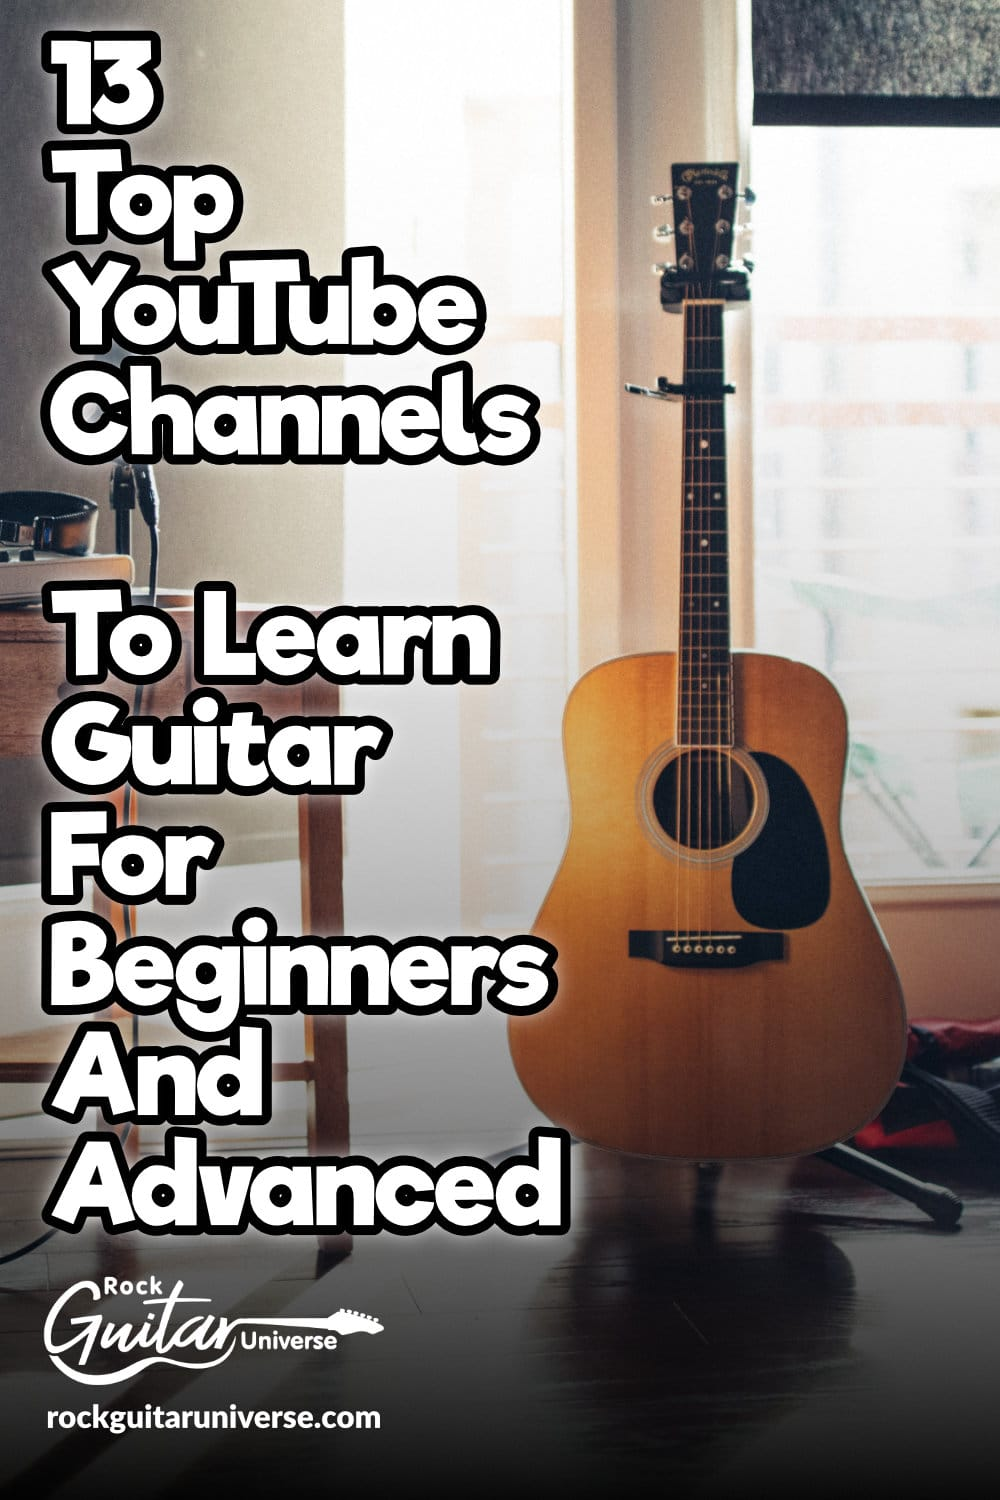 13 Top Youtube Channels To Learn Guitar For Beginners And Advanced Guitar For Beginners Guitar Songs For Beginners Guitar Lessons Songs